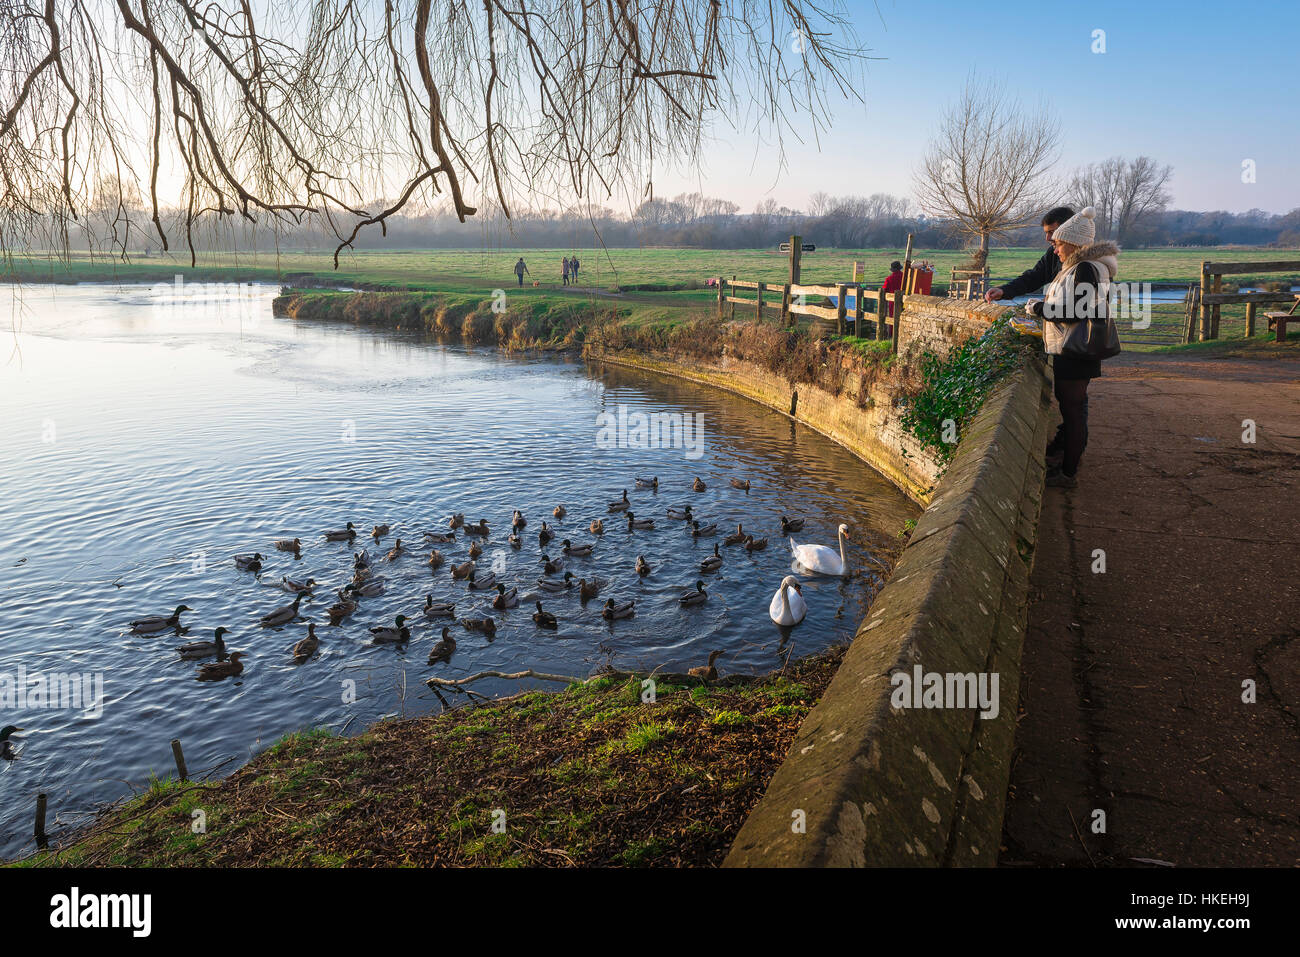 Sudbury Suffolk, a young couple feed ducks along the River Stour in Sudbury town, Suffolk, Babergh district, UK. - Stock Image